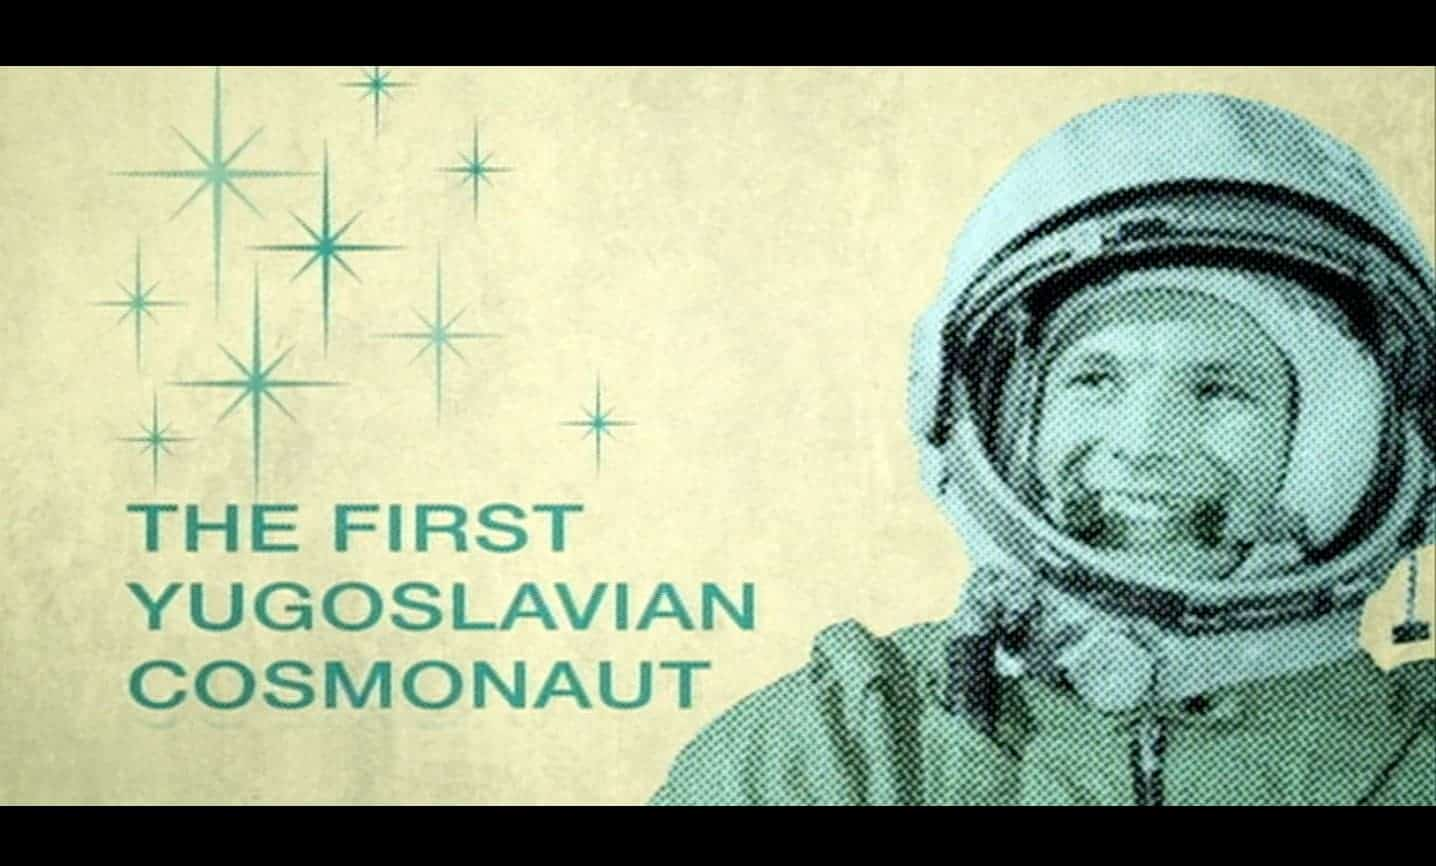 The First Yugoslavian Cosmonaut